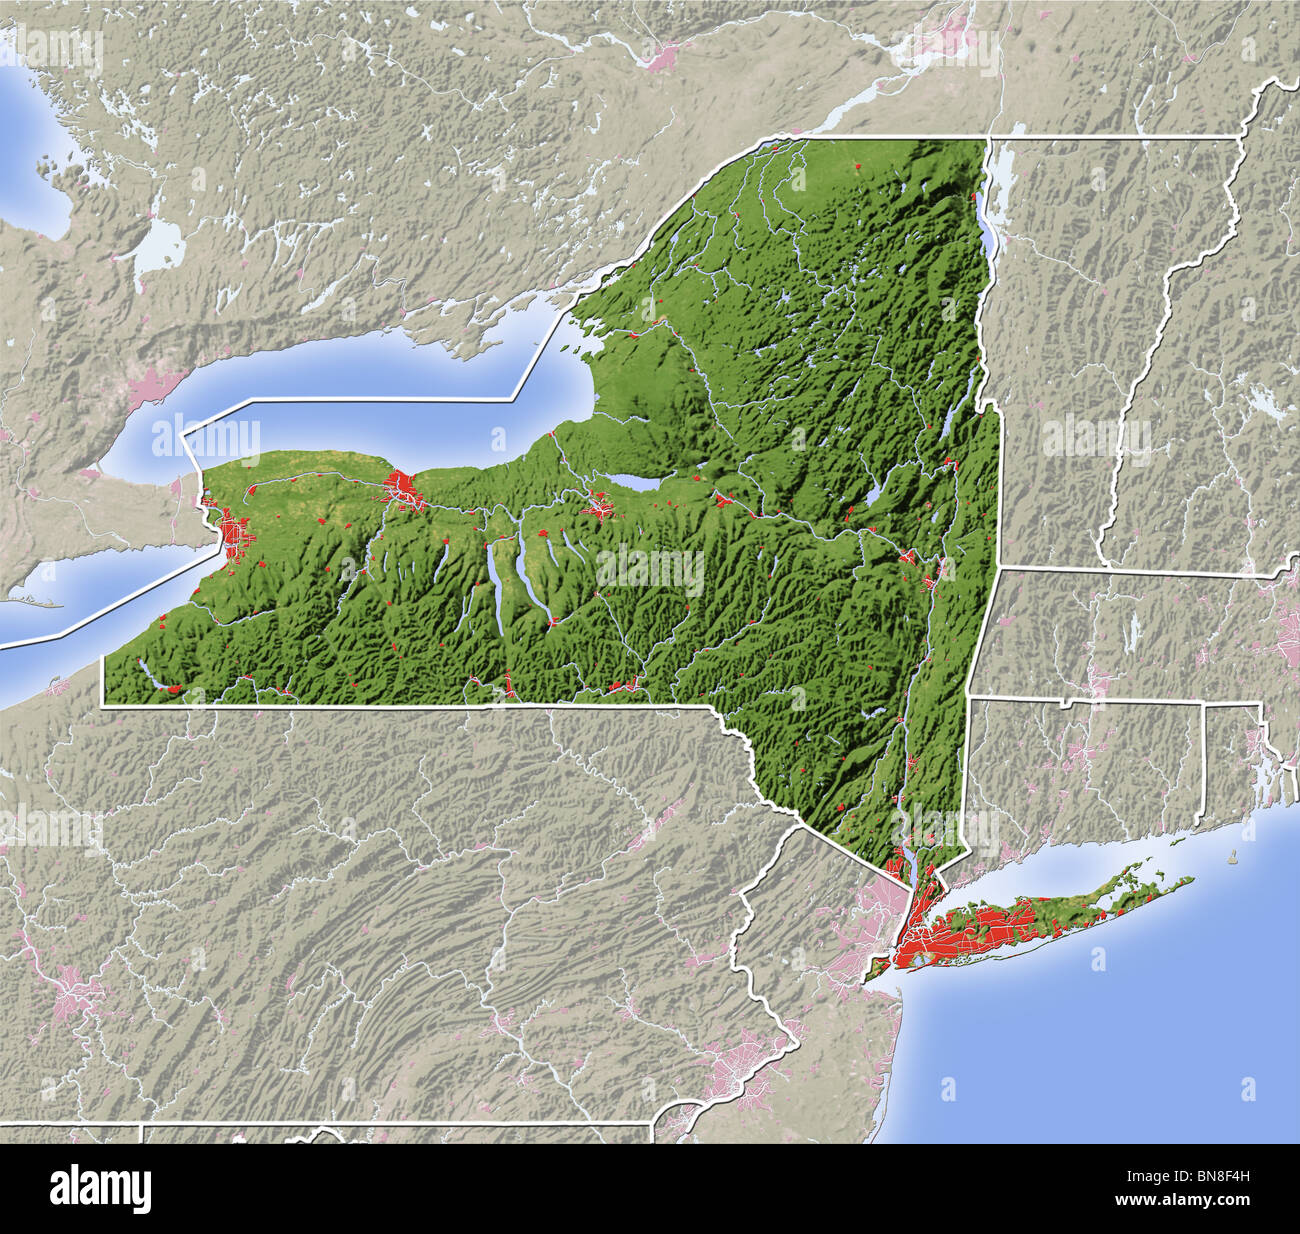 New York Map Stock Photos  New York Map Stock Images Alamy - New york map in 3d